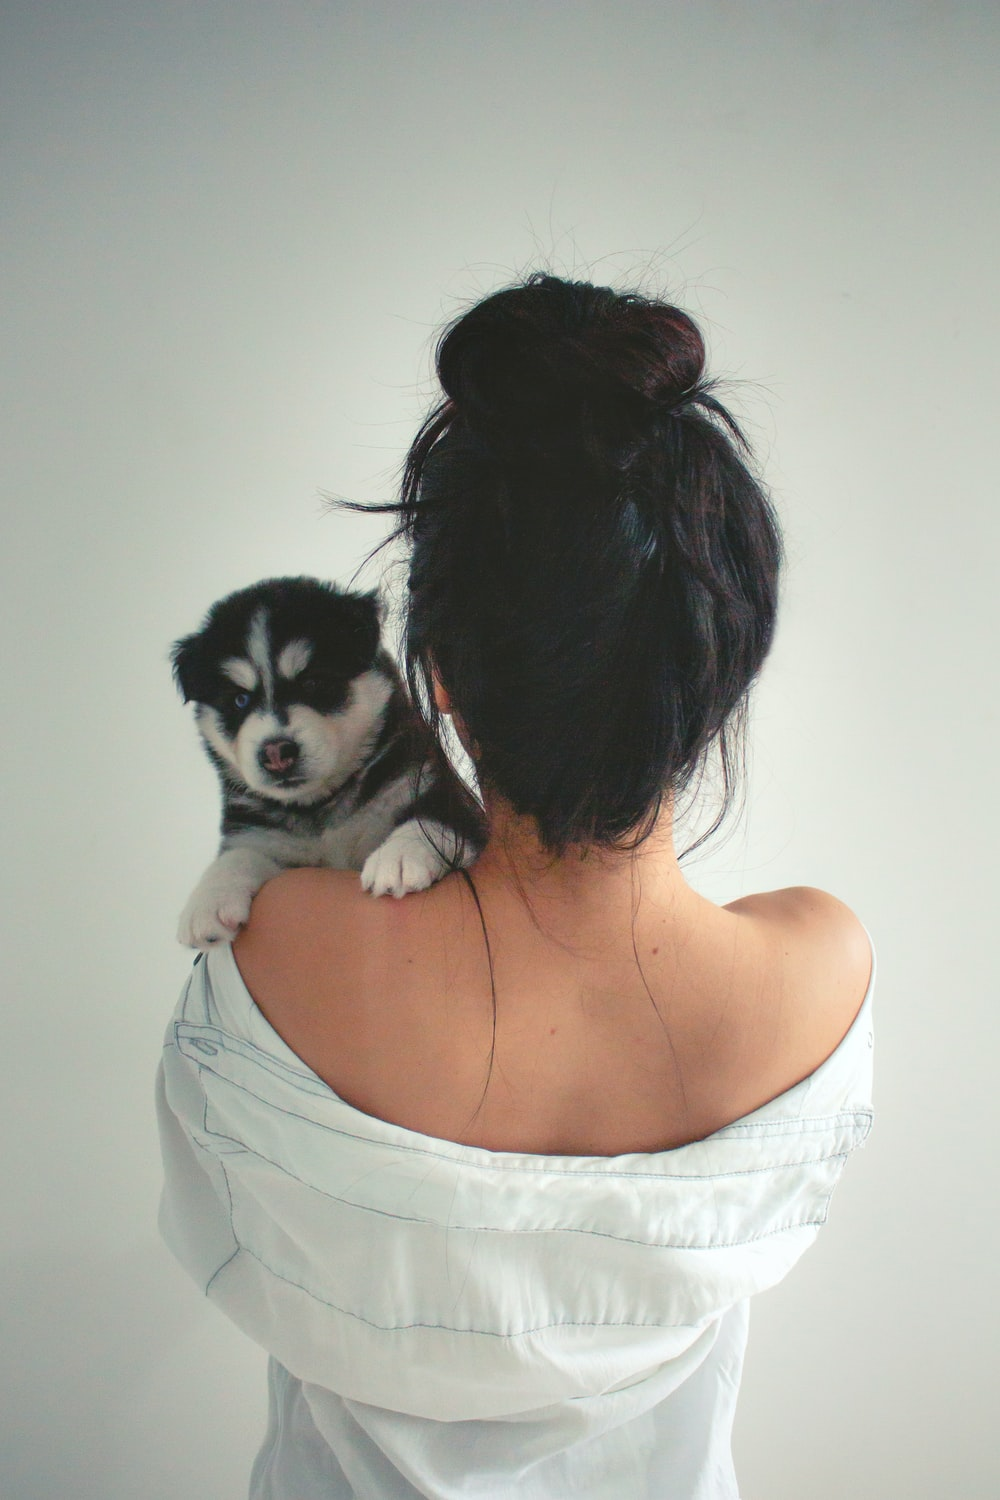 woman in white tank top carrying black and white puppy